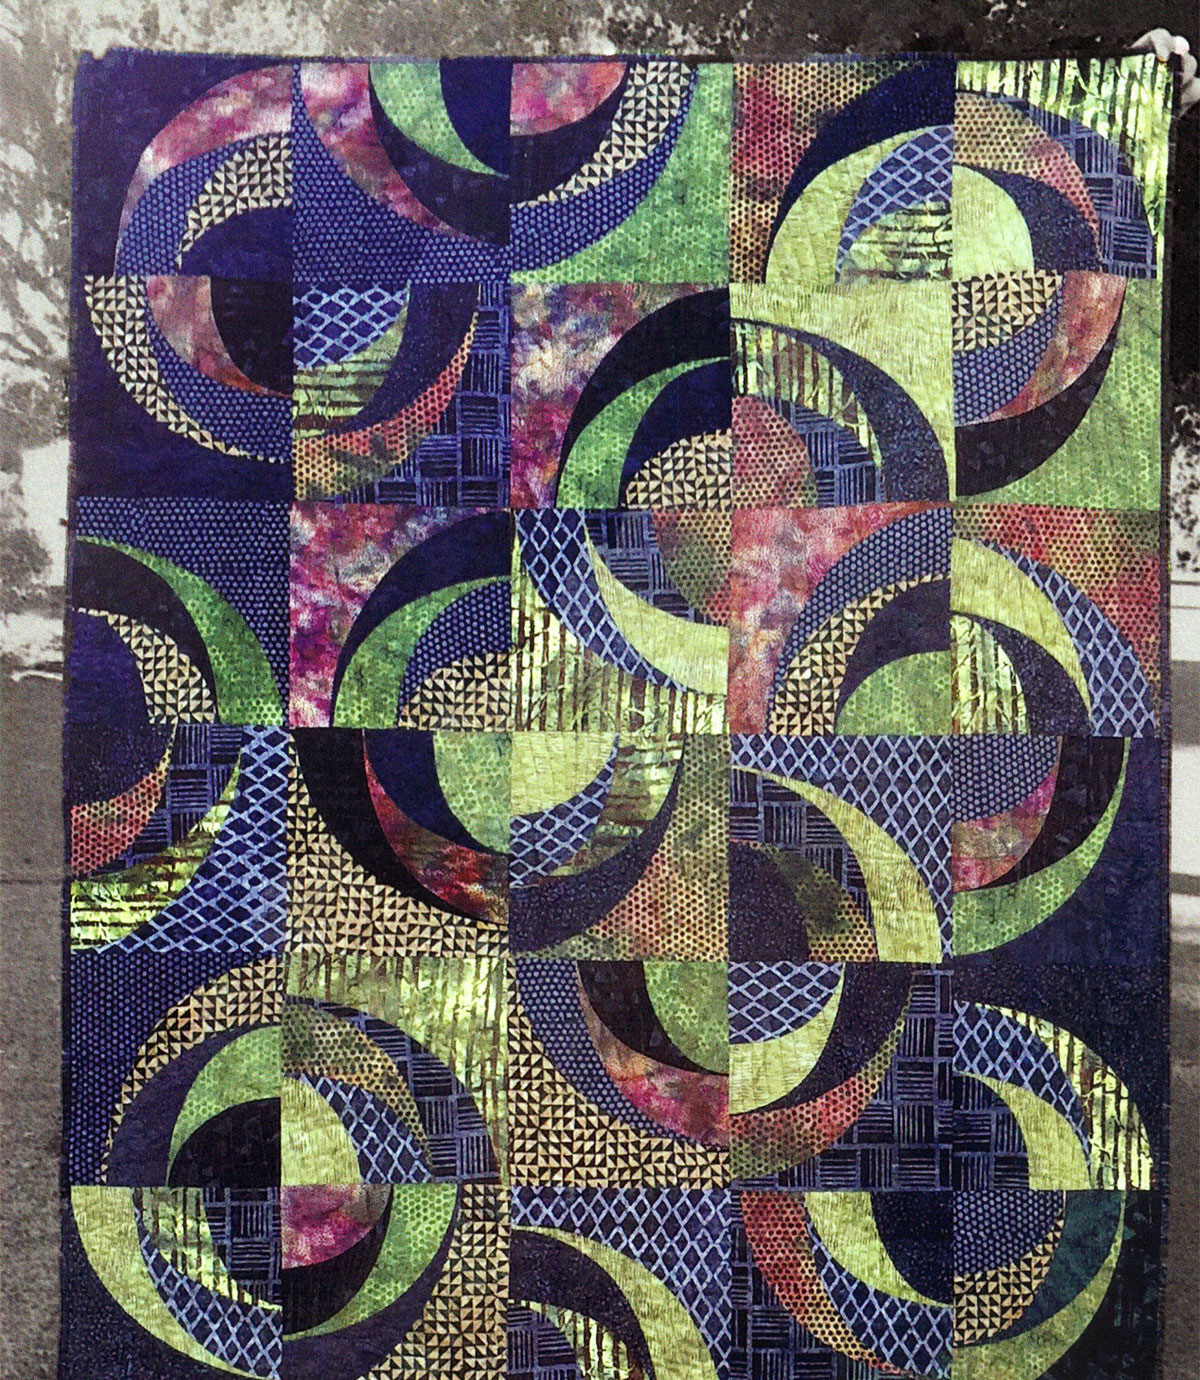 blue-onion-quilt-sewing-pattern-Saginaw-st-quilts-1